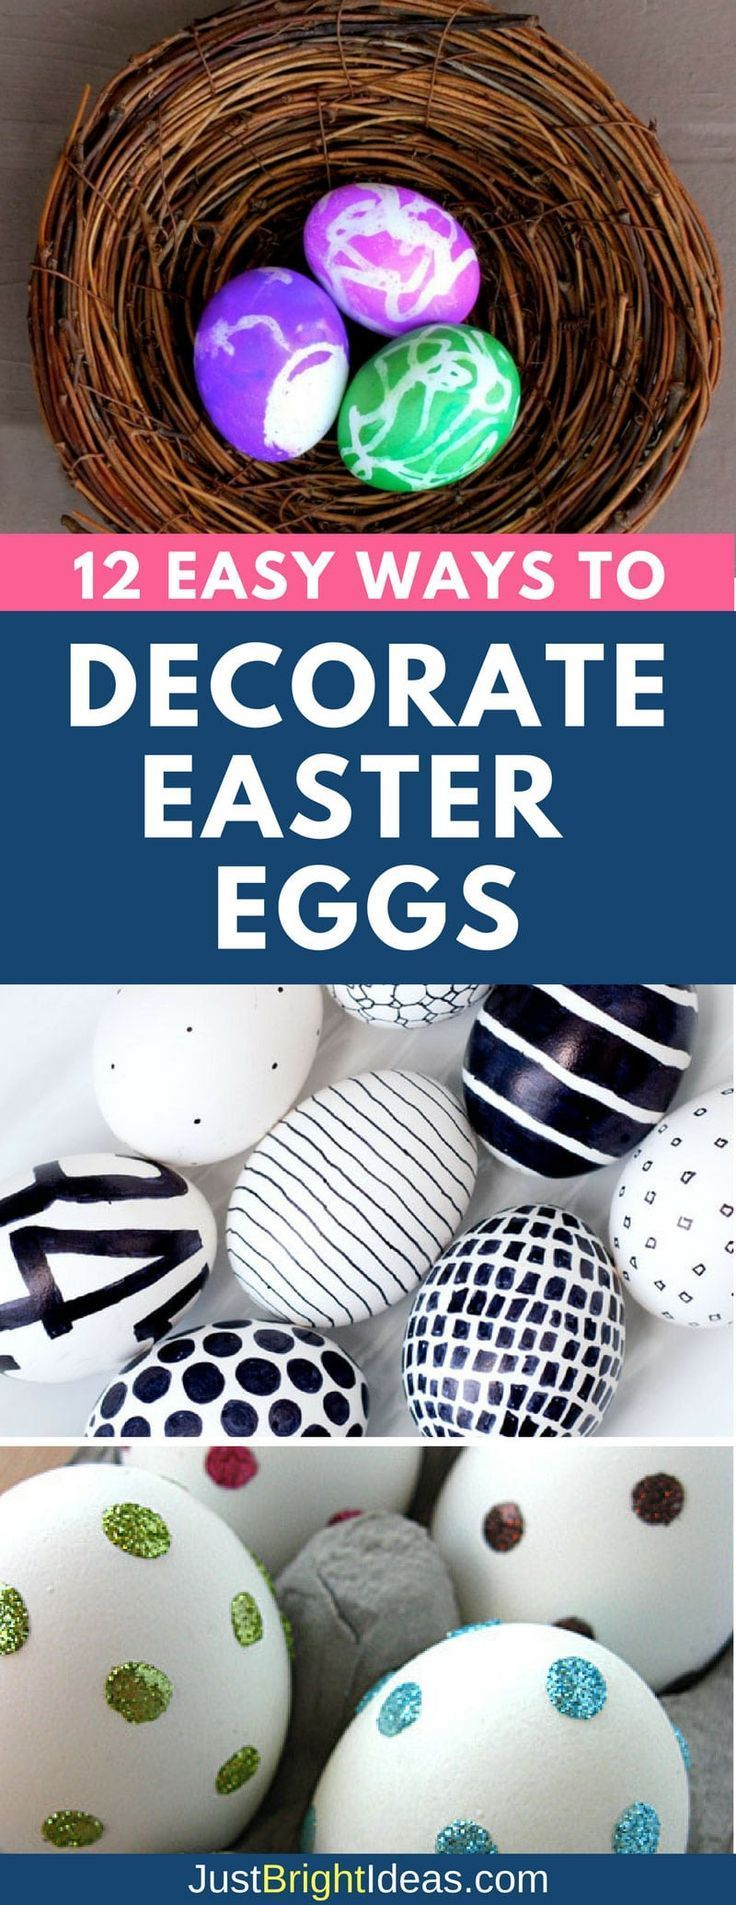 Do you know what the kids would love to do this easter